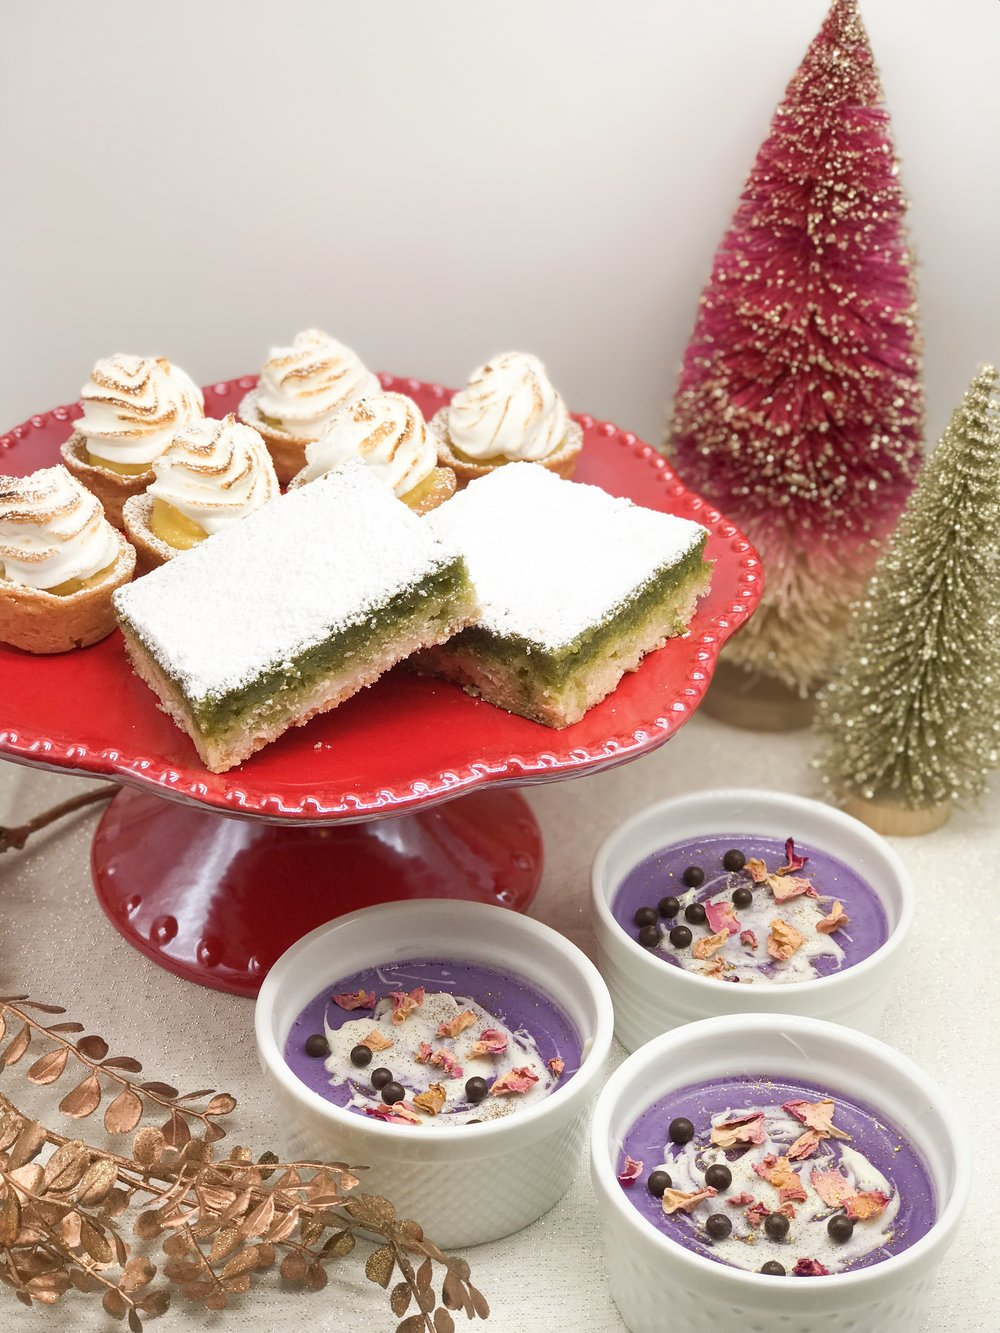 Sweet Condesa will be serving a dessert sampler consisting of  Brazo de Mercedes Tartlet, Pandan Coconut Bar and Ube Panna Cotta  at Parol Fest this year.